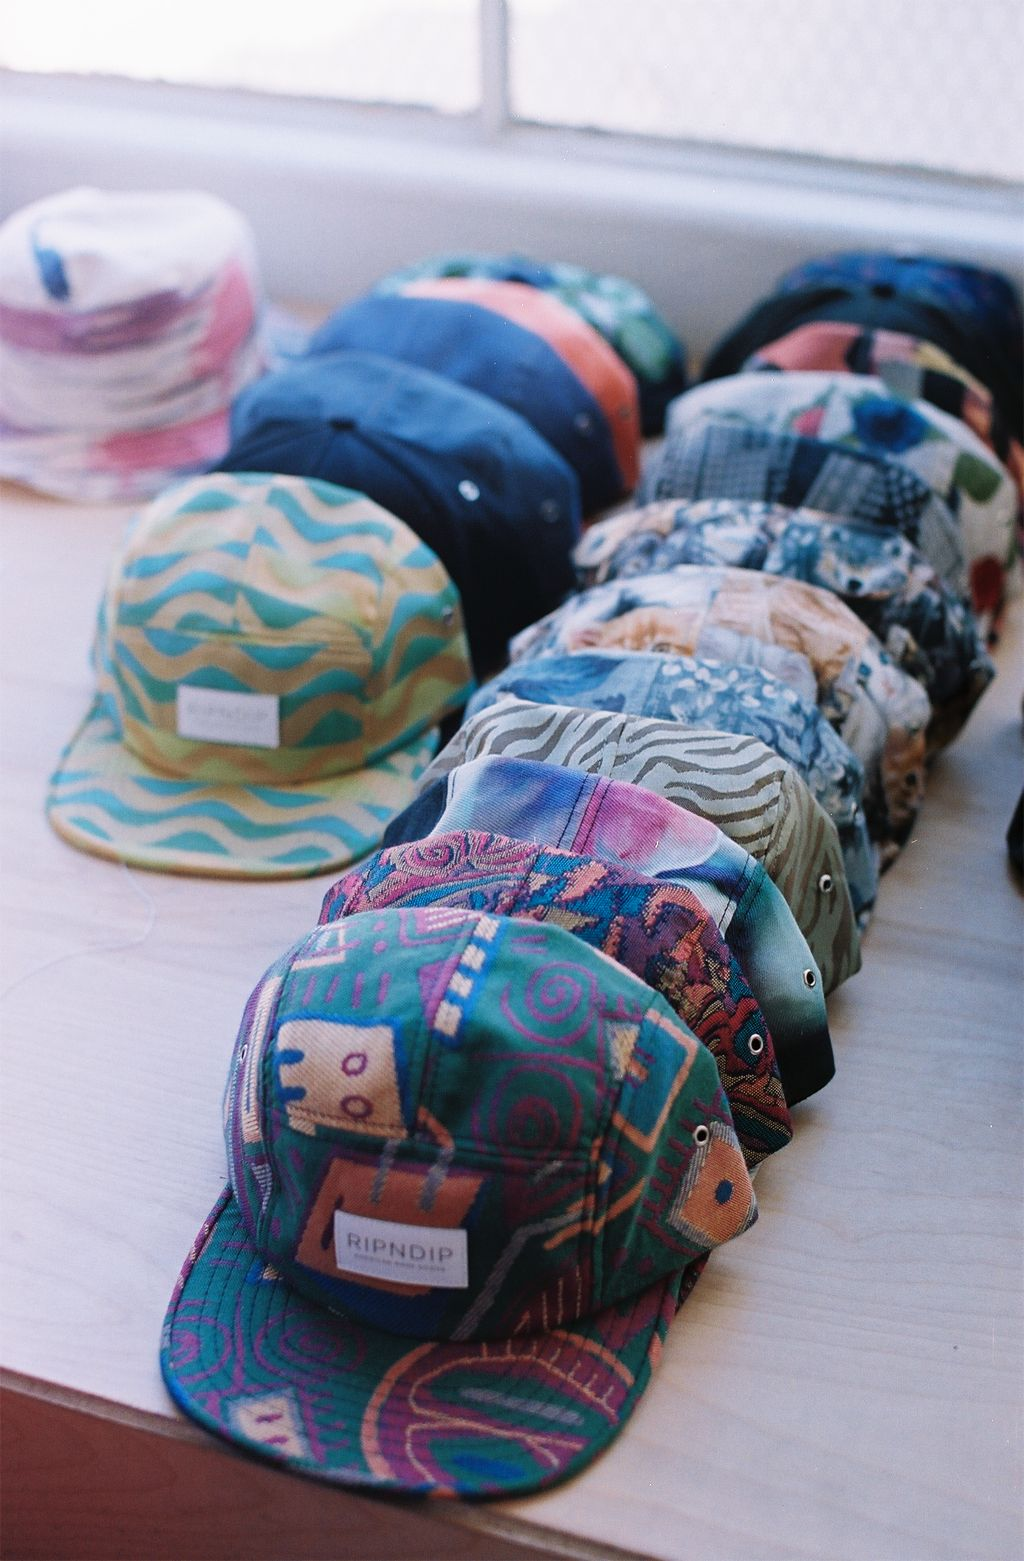 5 panel hats    Ripndip  0d131cd5a46